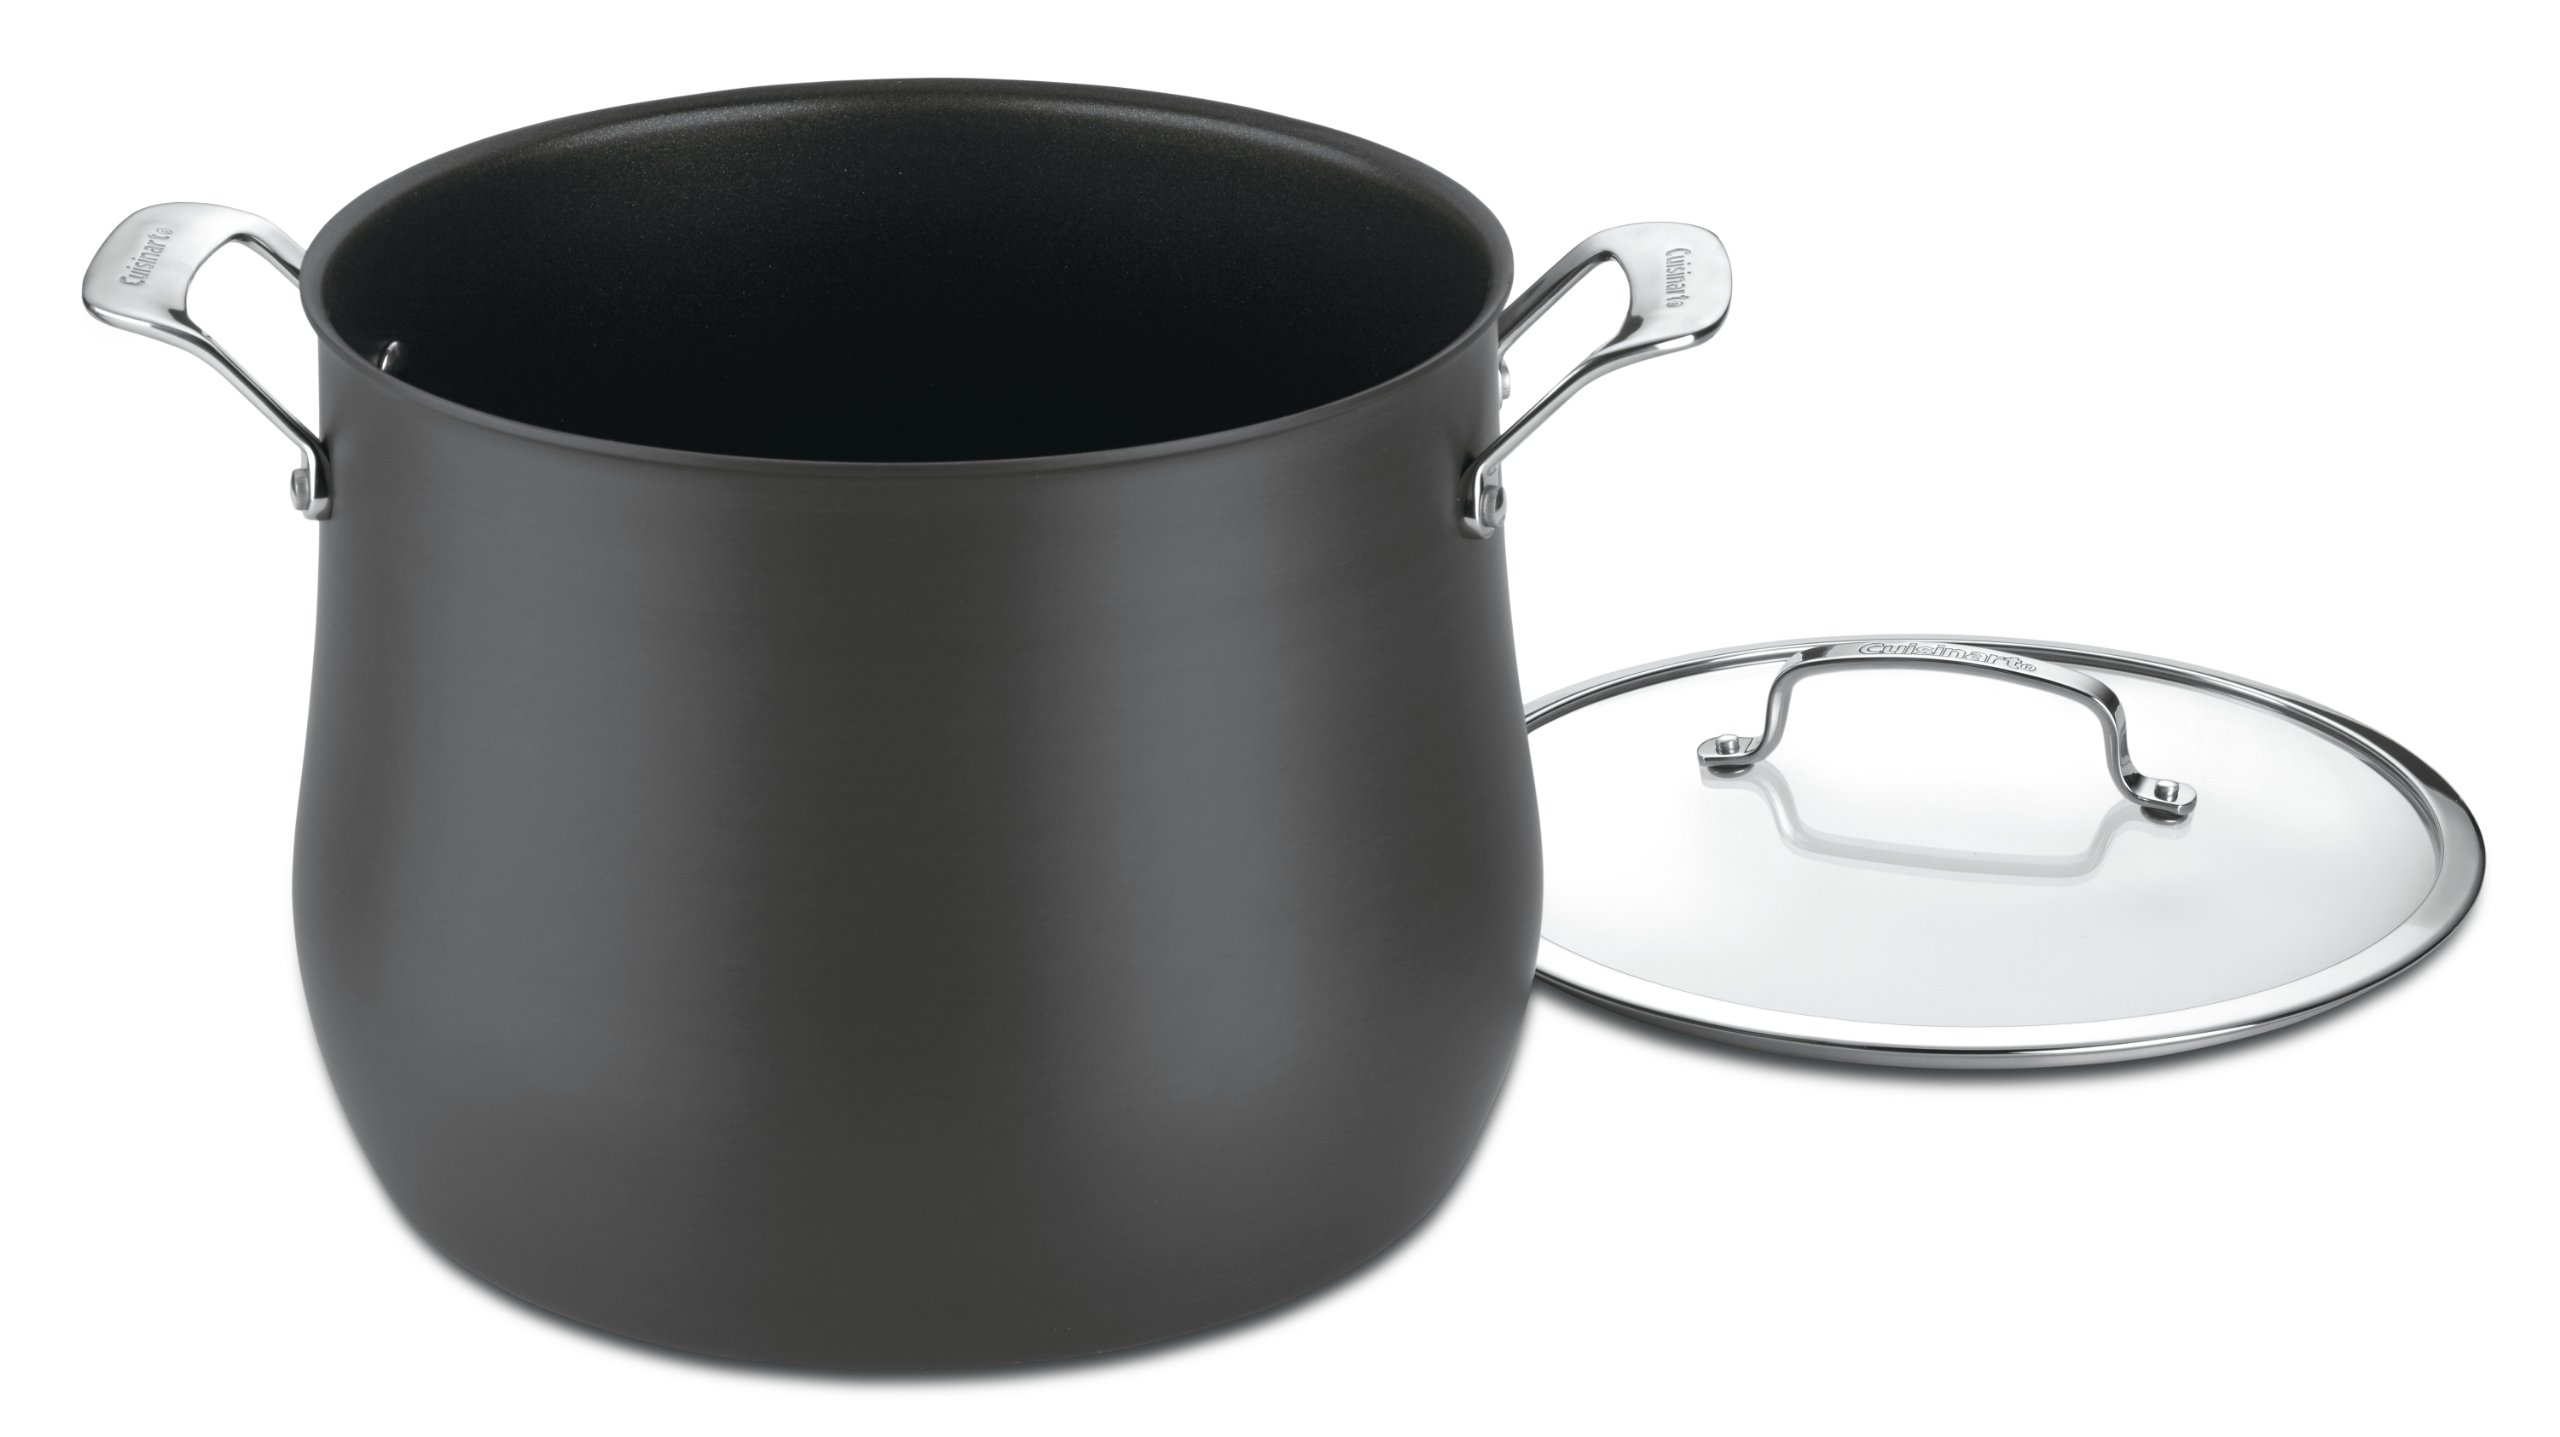 Cuisinart 6466-26 Contour Hard Anodized 12-Quart Stockpot with Cover by Cuisinart